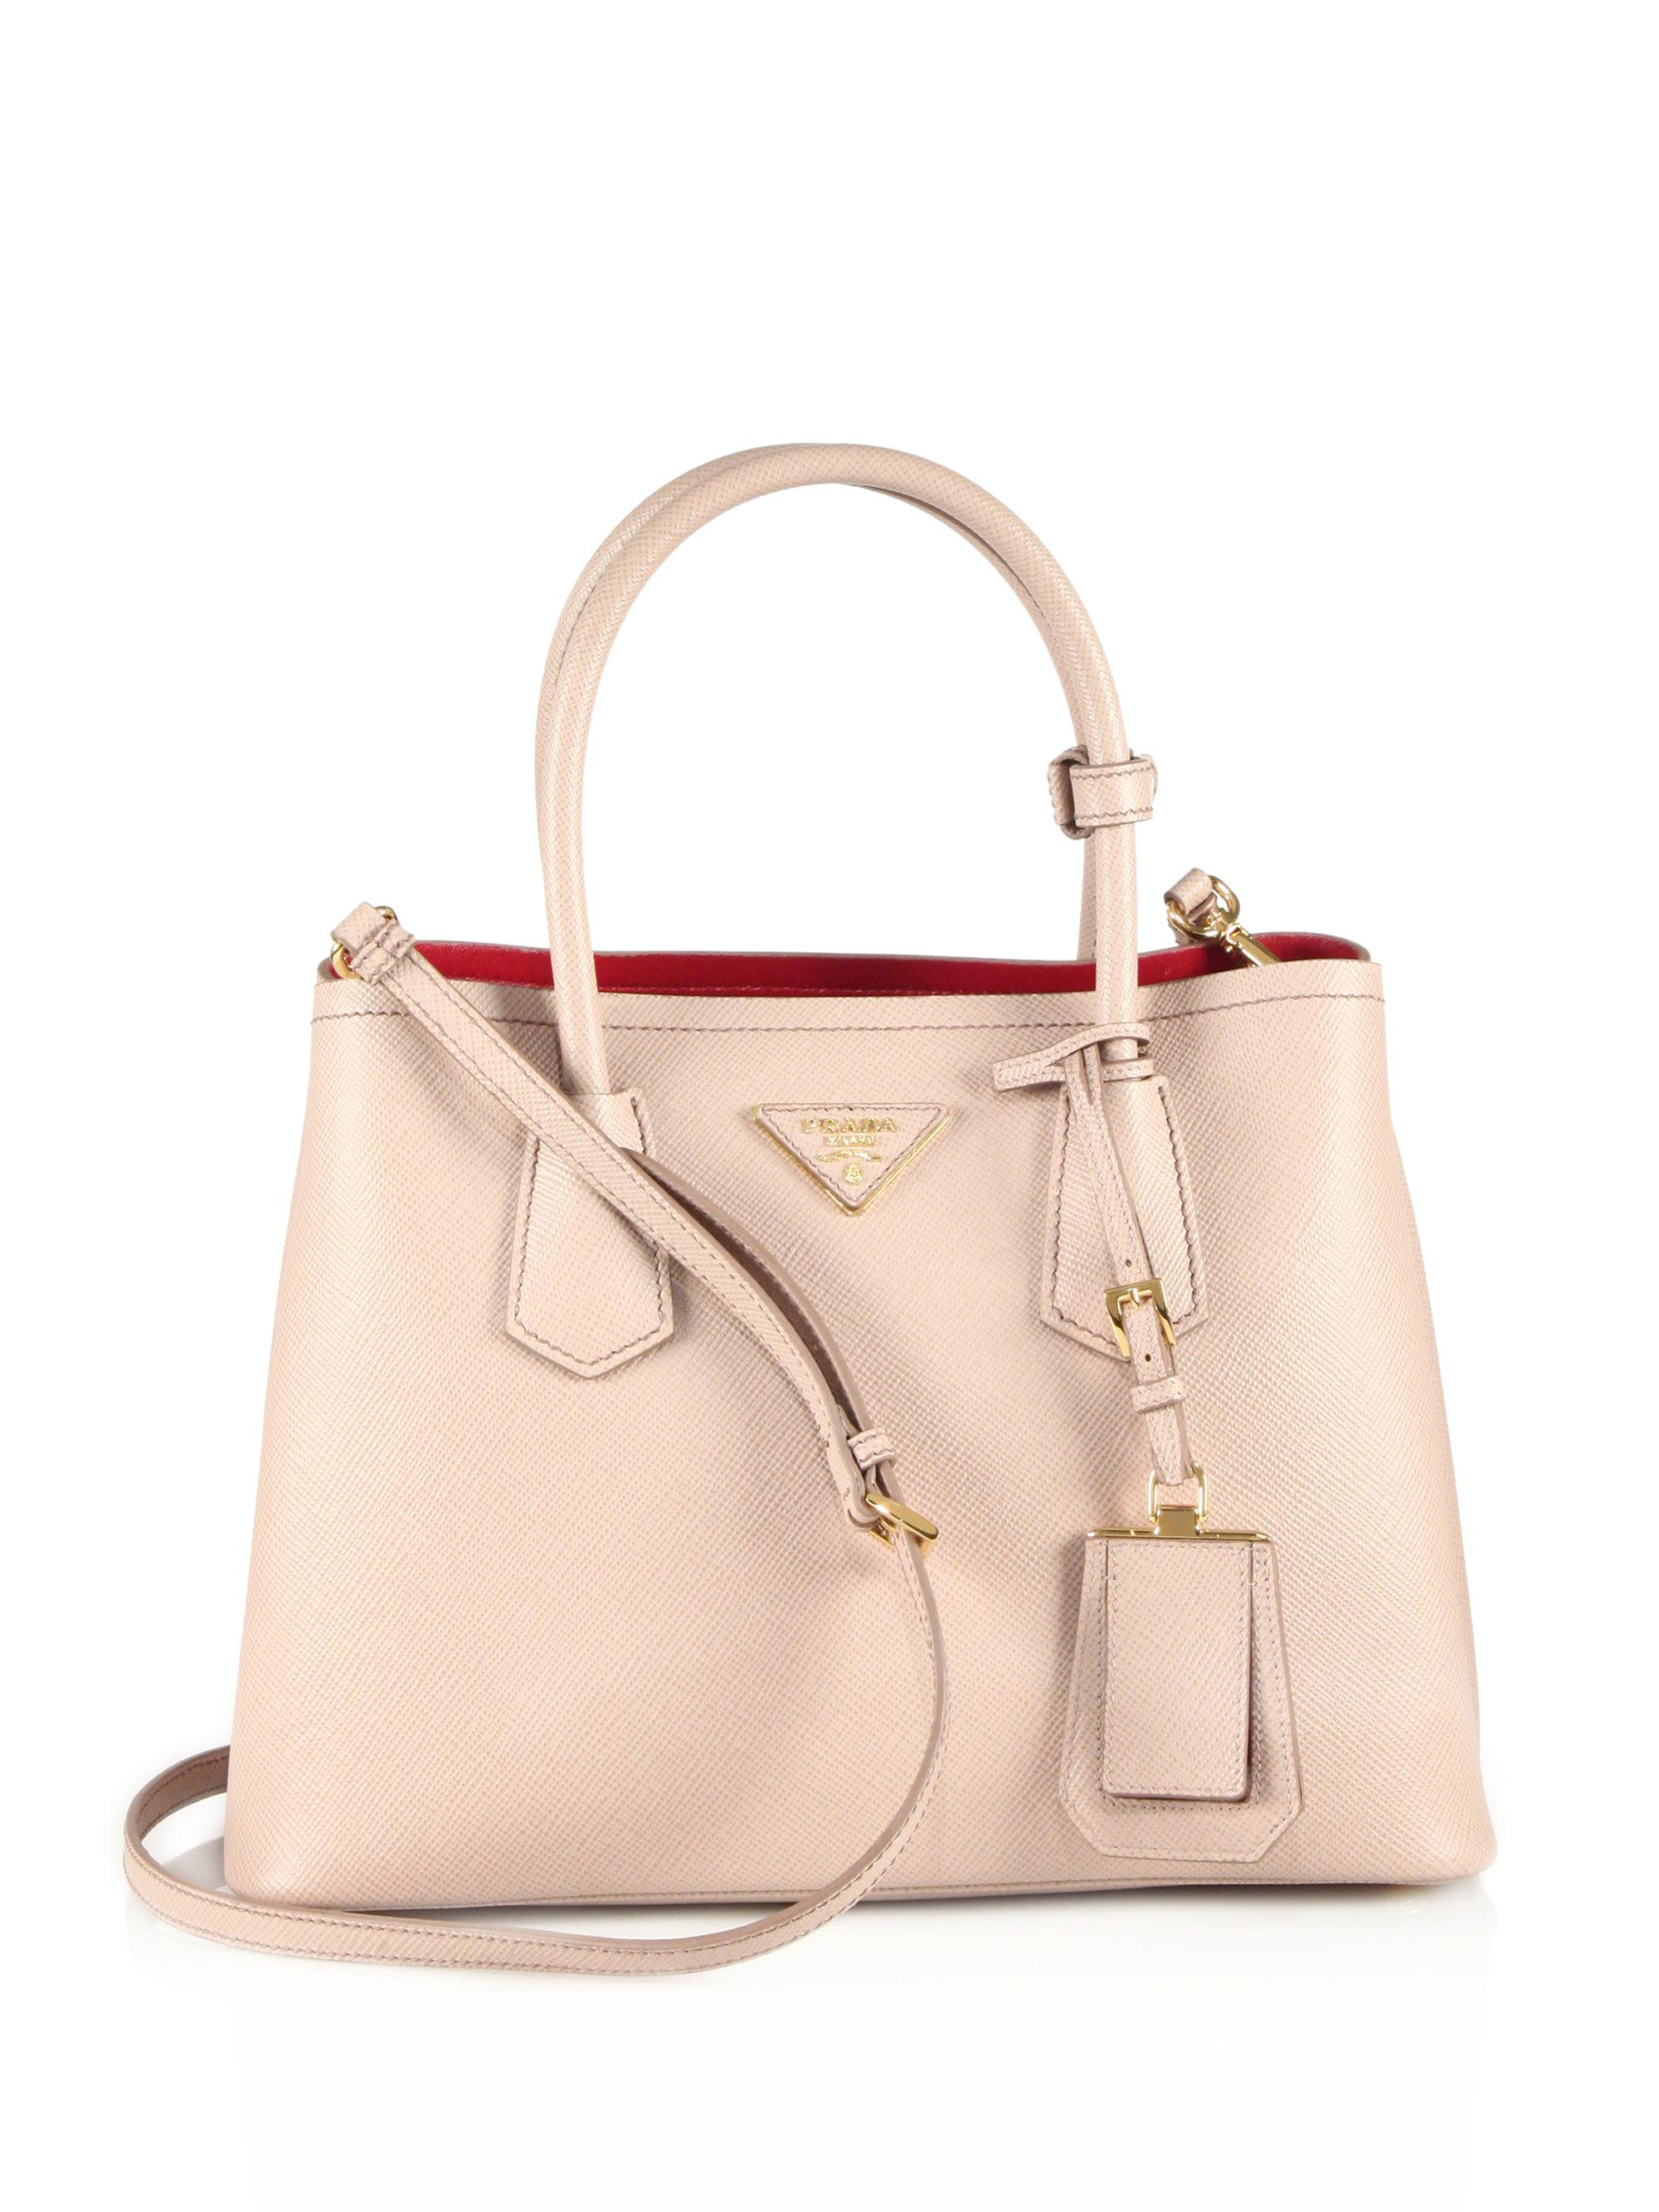 4117fa8f77 ... where to buy lyst prada saffiano cuir small double bag in natural d8cbd  195ea ...